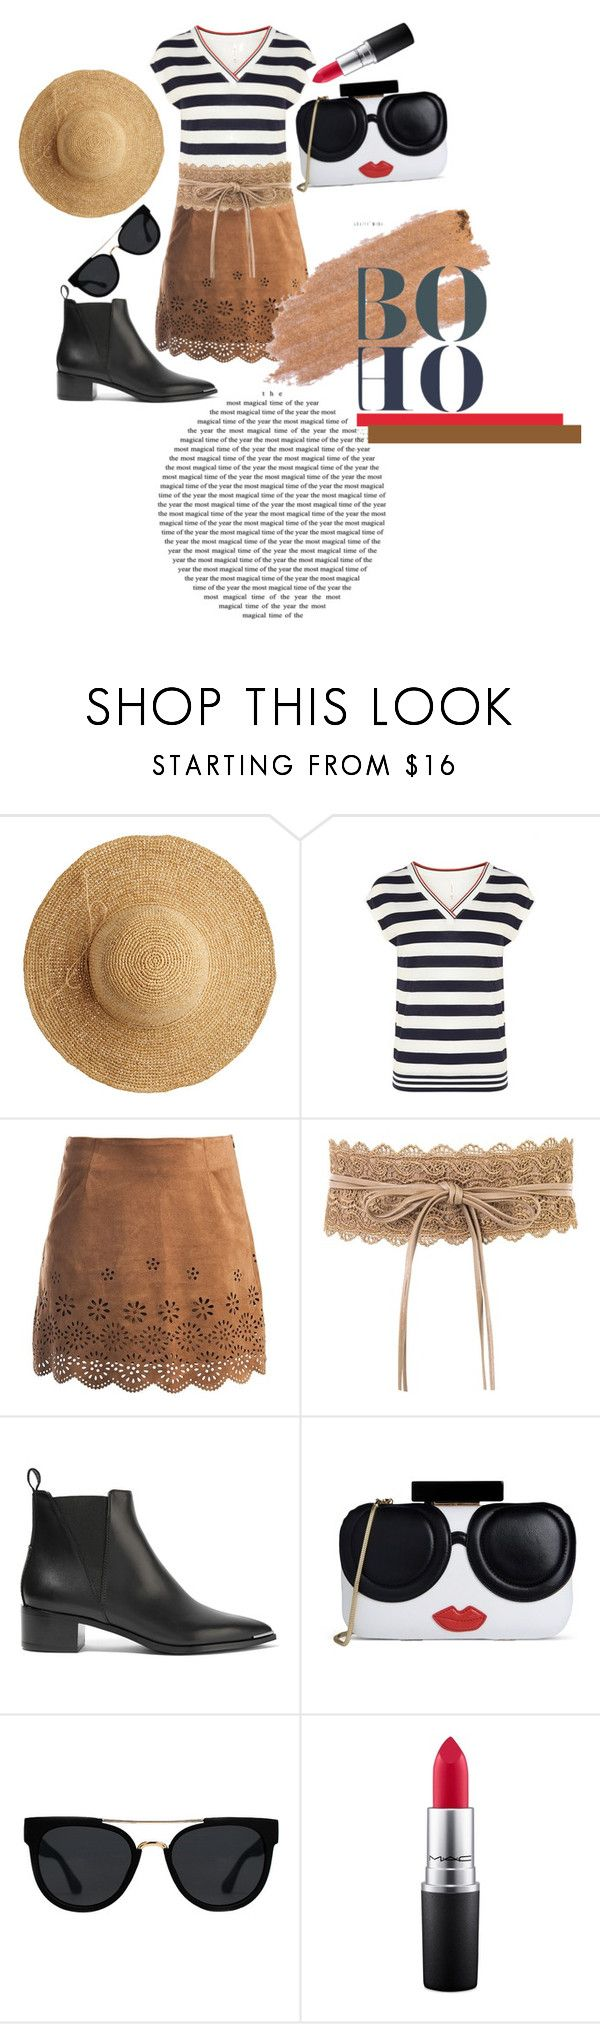 """Boho-City Look"" by karimaputri on Polyvore featuring Flora Bella, Karen Millen, Sans Souci, Acne Studios, Alice + Olivia, Quay, MAC Cosmetics, Jane Iredale and stripedshirt"